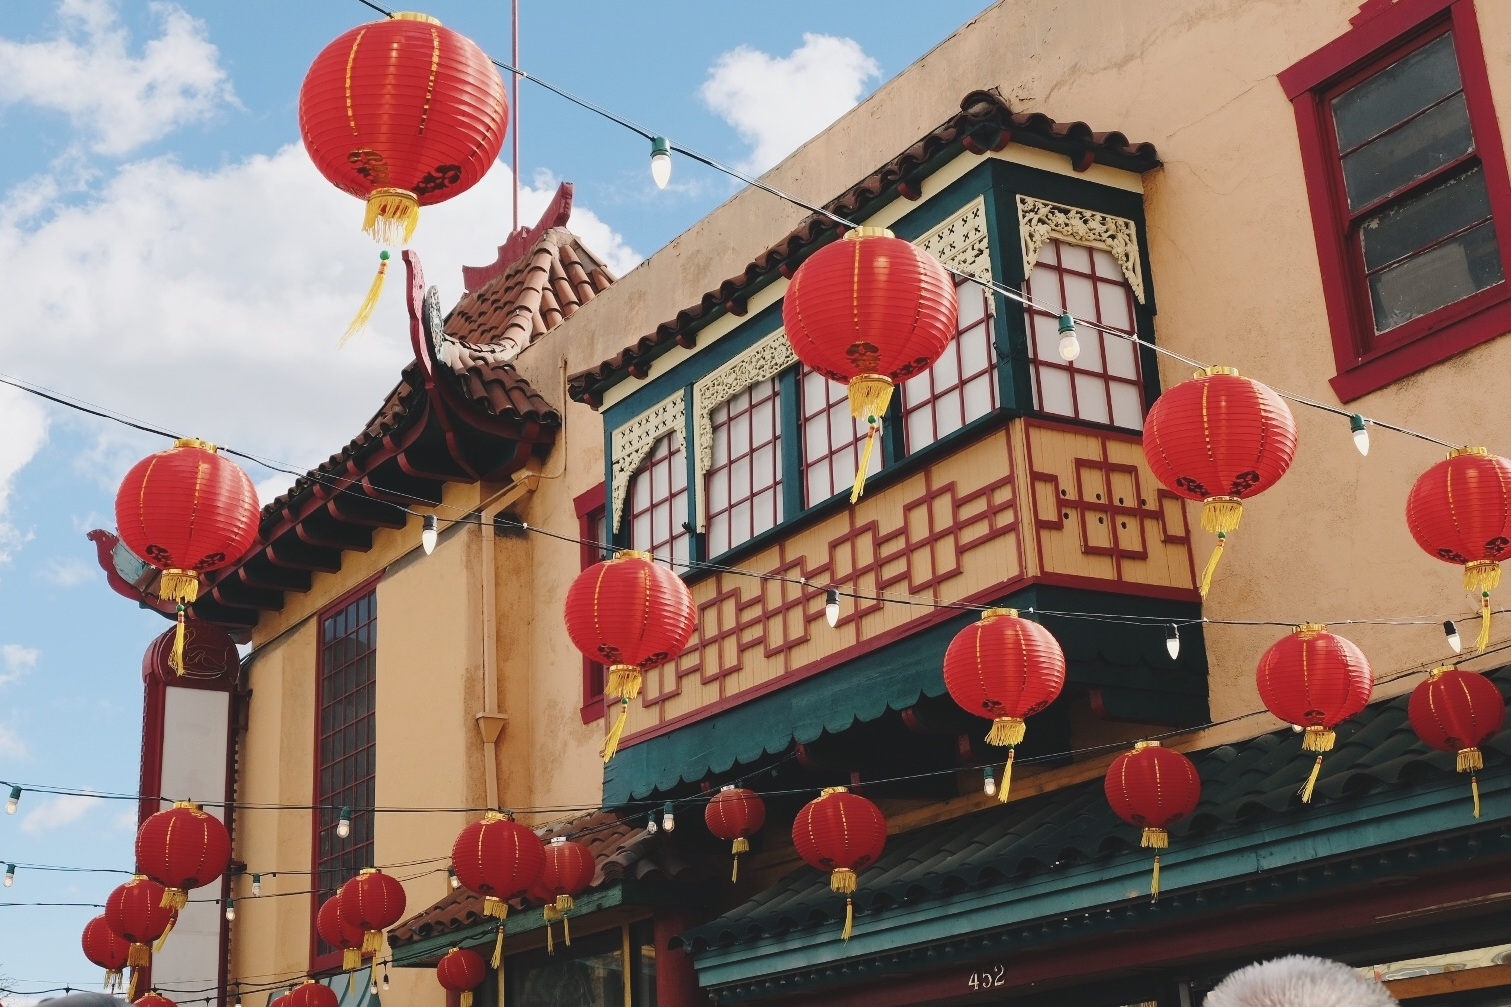 Los Angeles Chinatown with hanging red Chinese lanterns